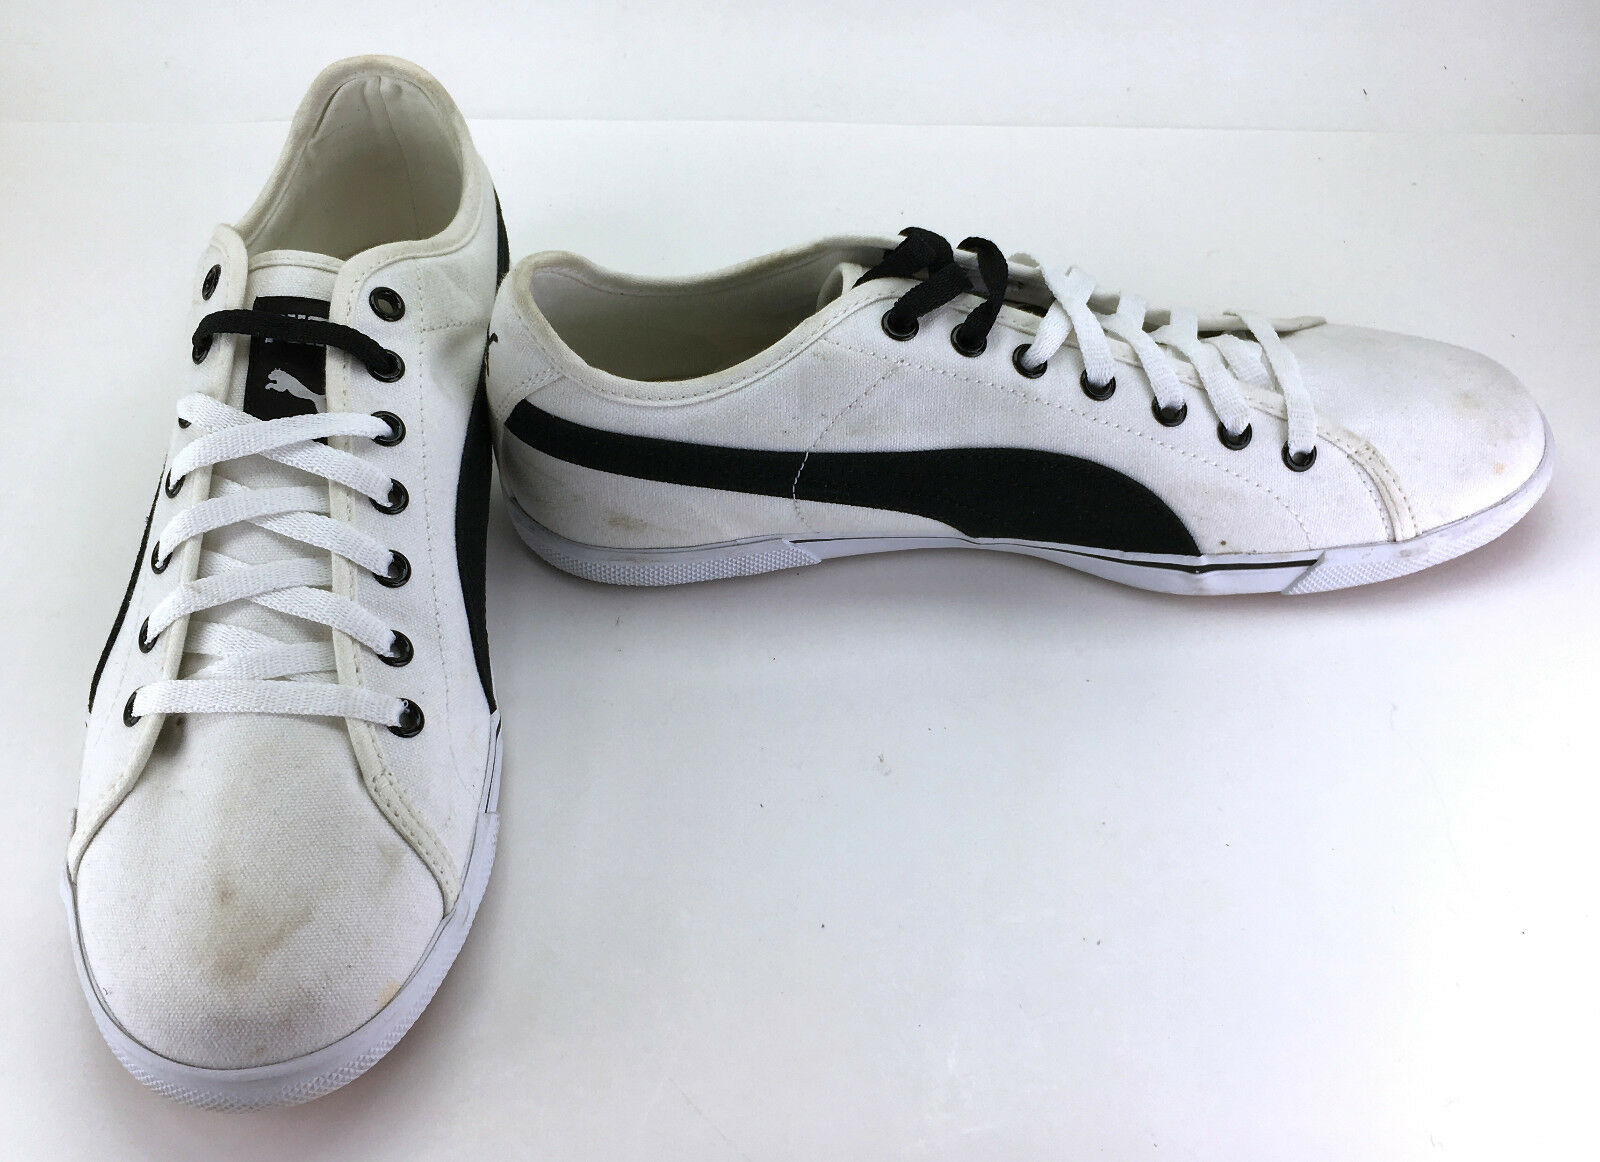 Puma Shoes Sneakers Benecio Canvas White/Black Sneakers Shoes Size 12 3572b2